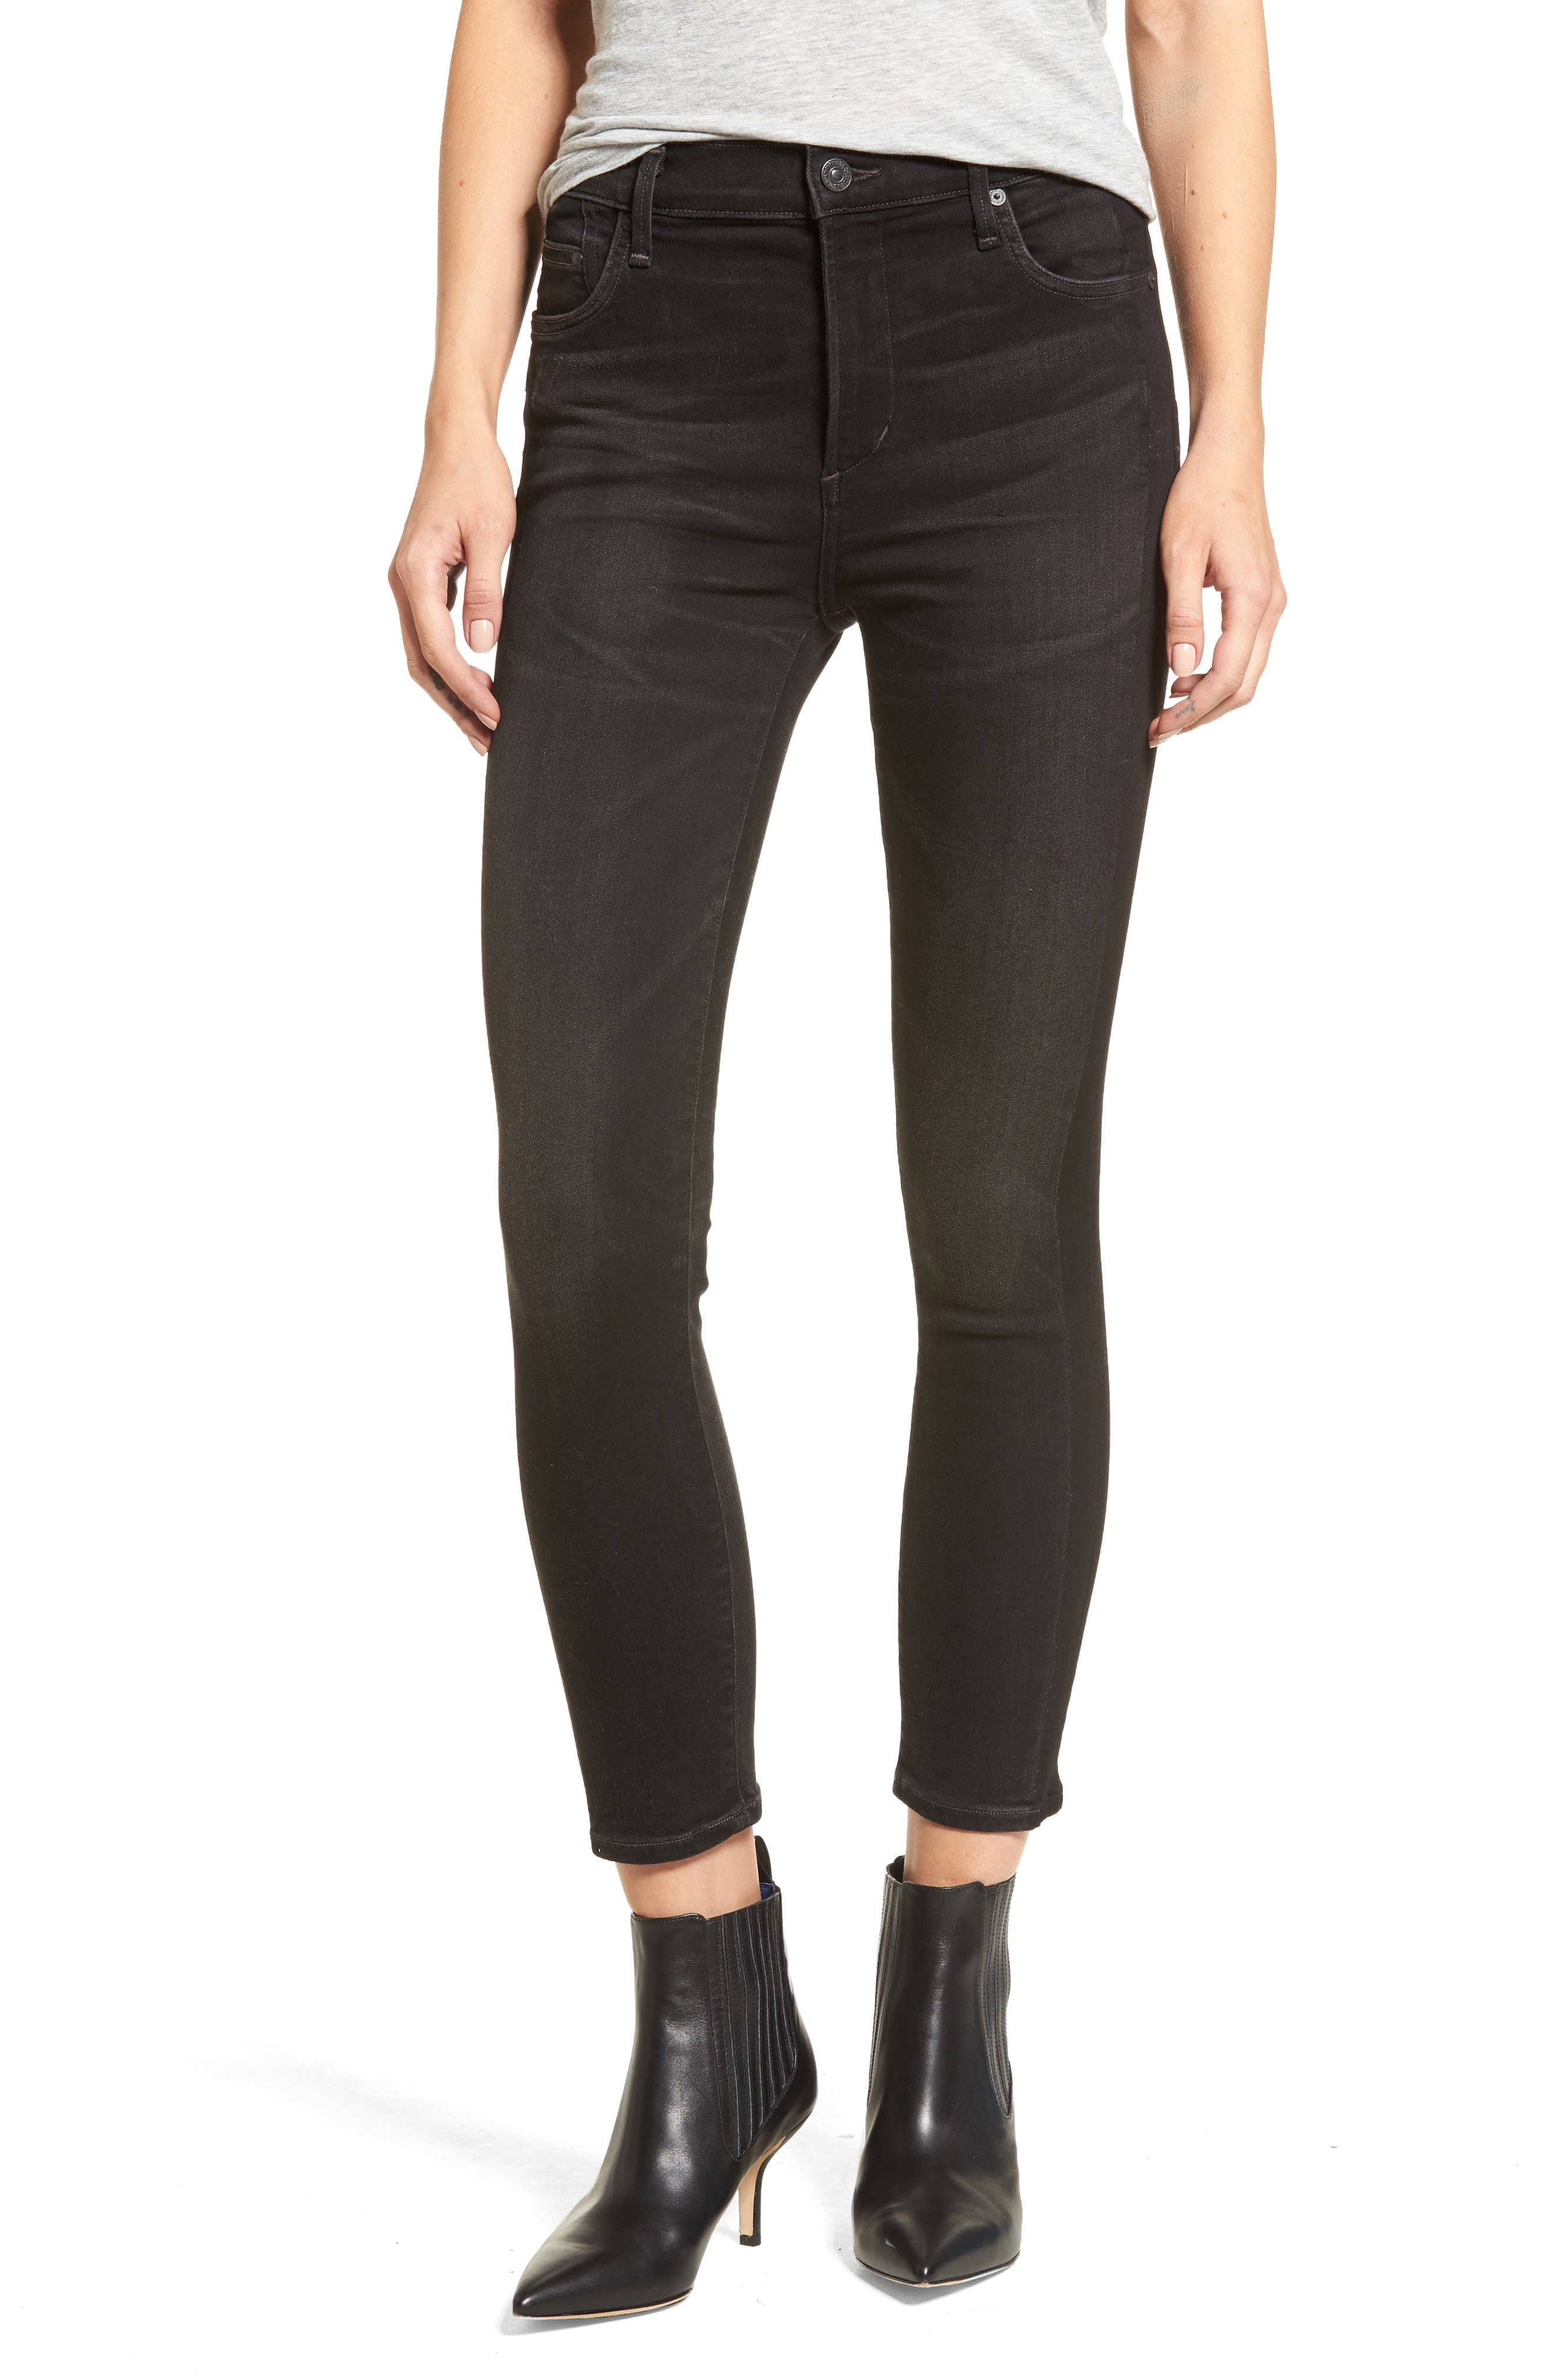 Alternate Image 1 Selected - Citizens of Humanity Rocket High Waist Crop Skinny Jeans (Shadow Stripe Darkness)